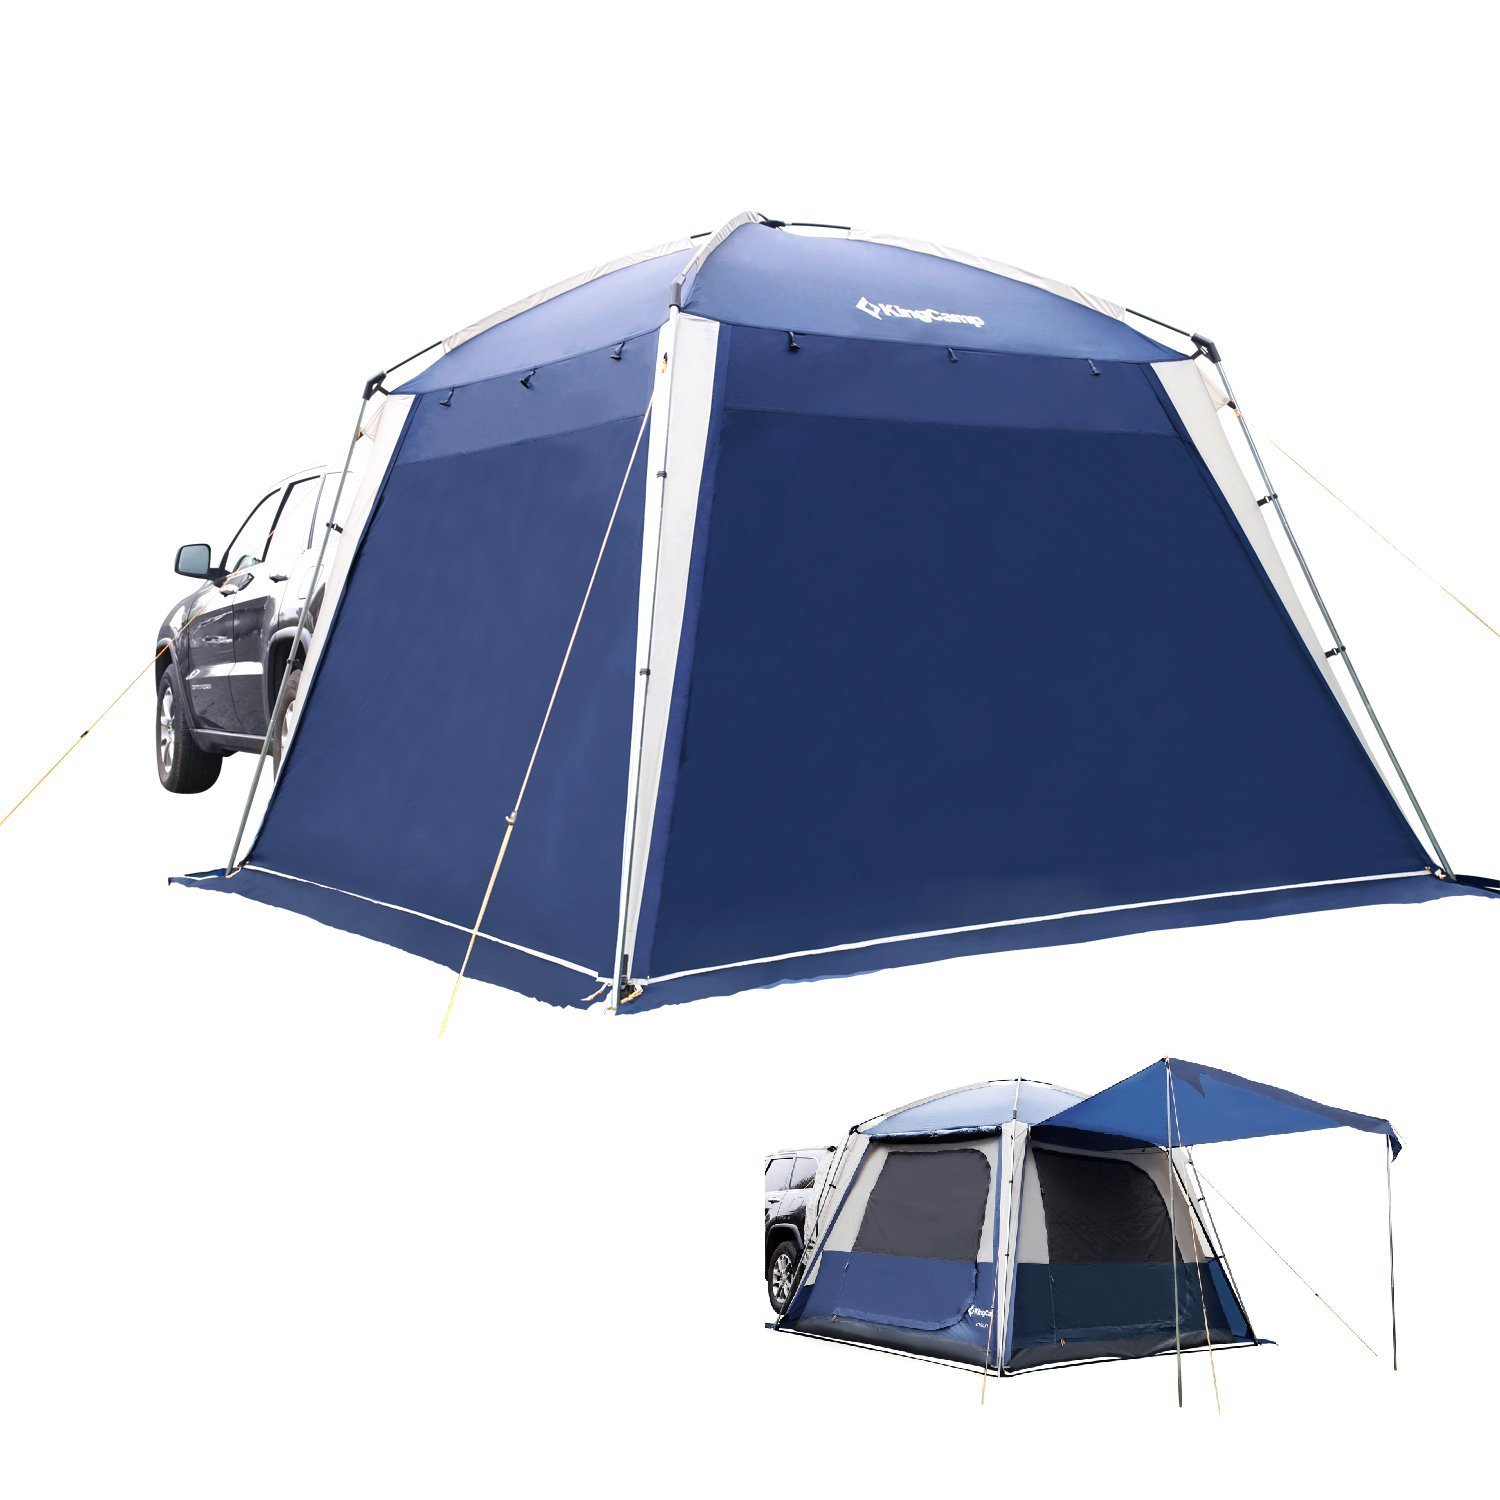 Kingcamp Versatile Room Waterproof Fire Resistant Breathable Suv 3 Season Camping Tent For 5 People Buy Online In Dominica At Dominica Desertcart Com Productid 207016115